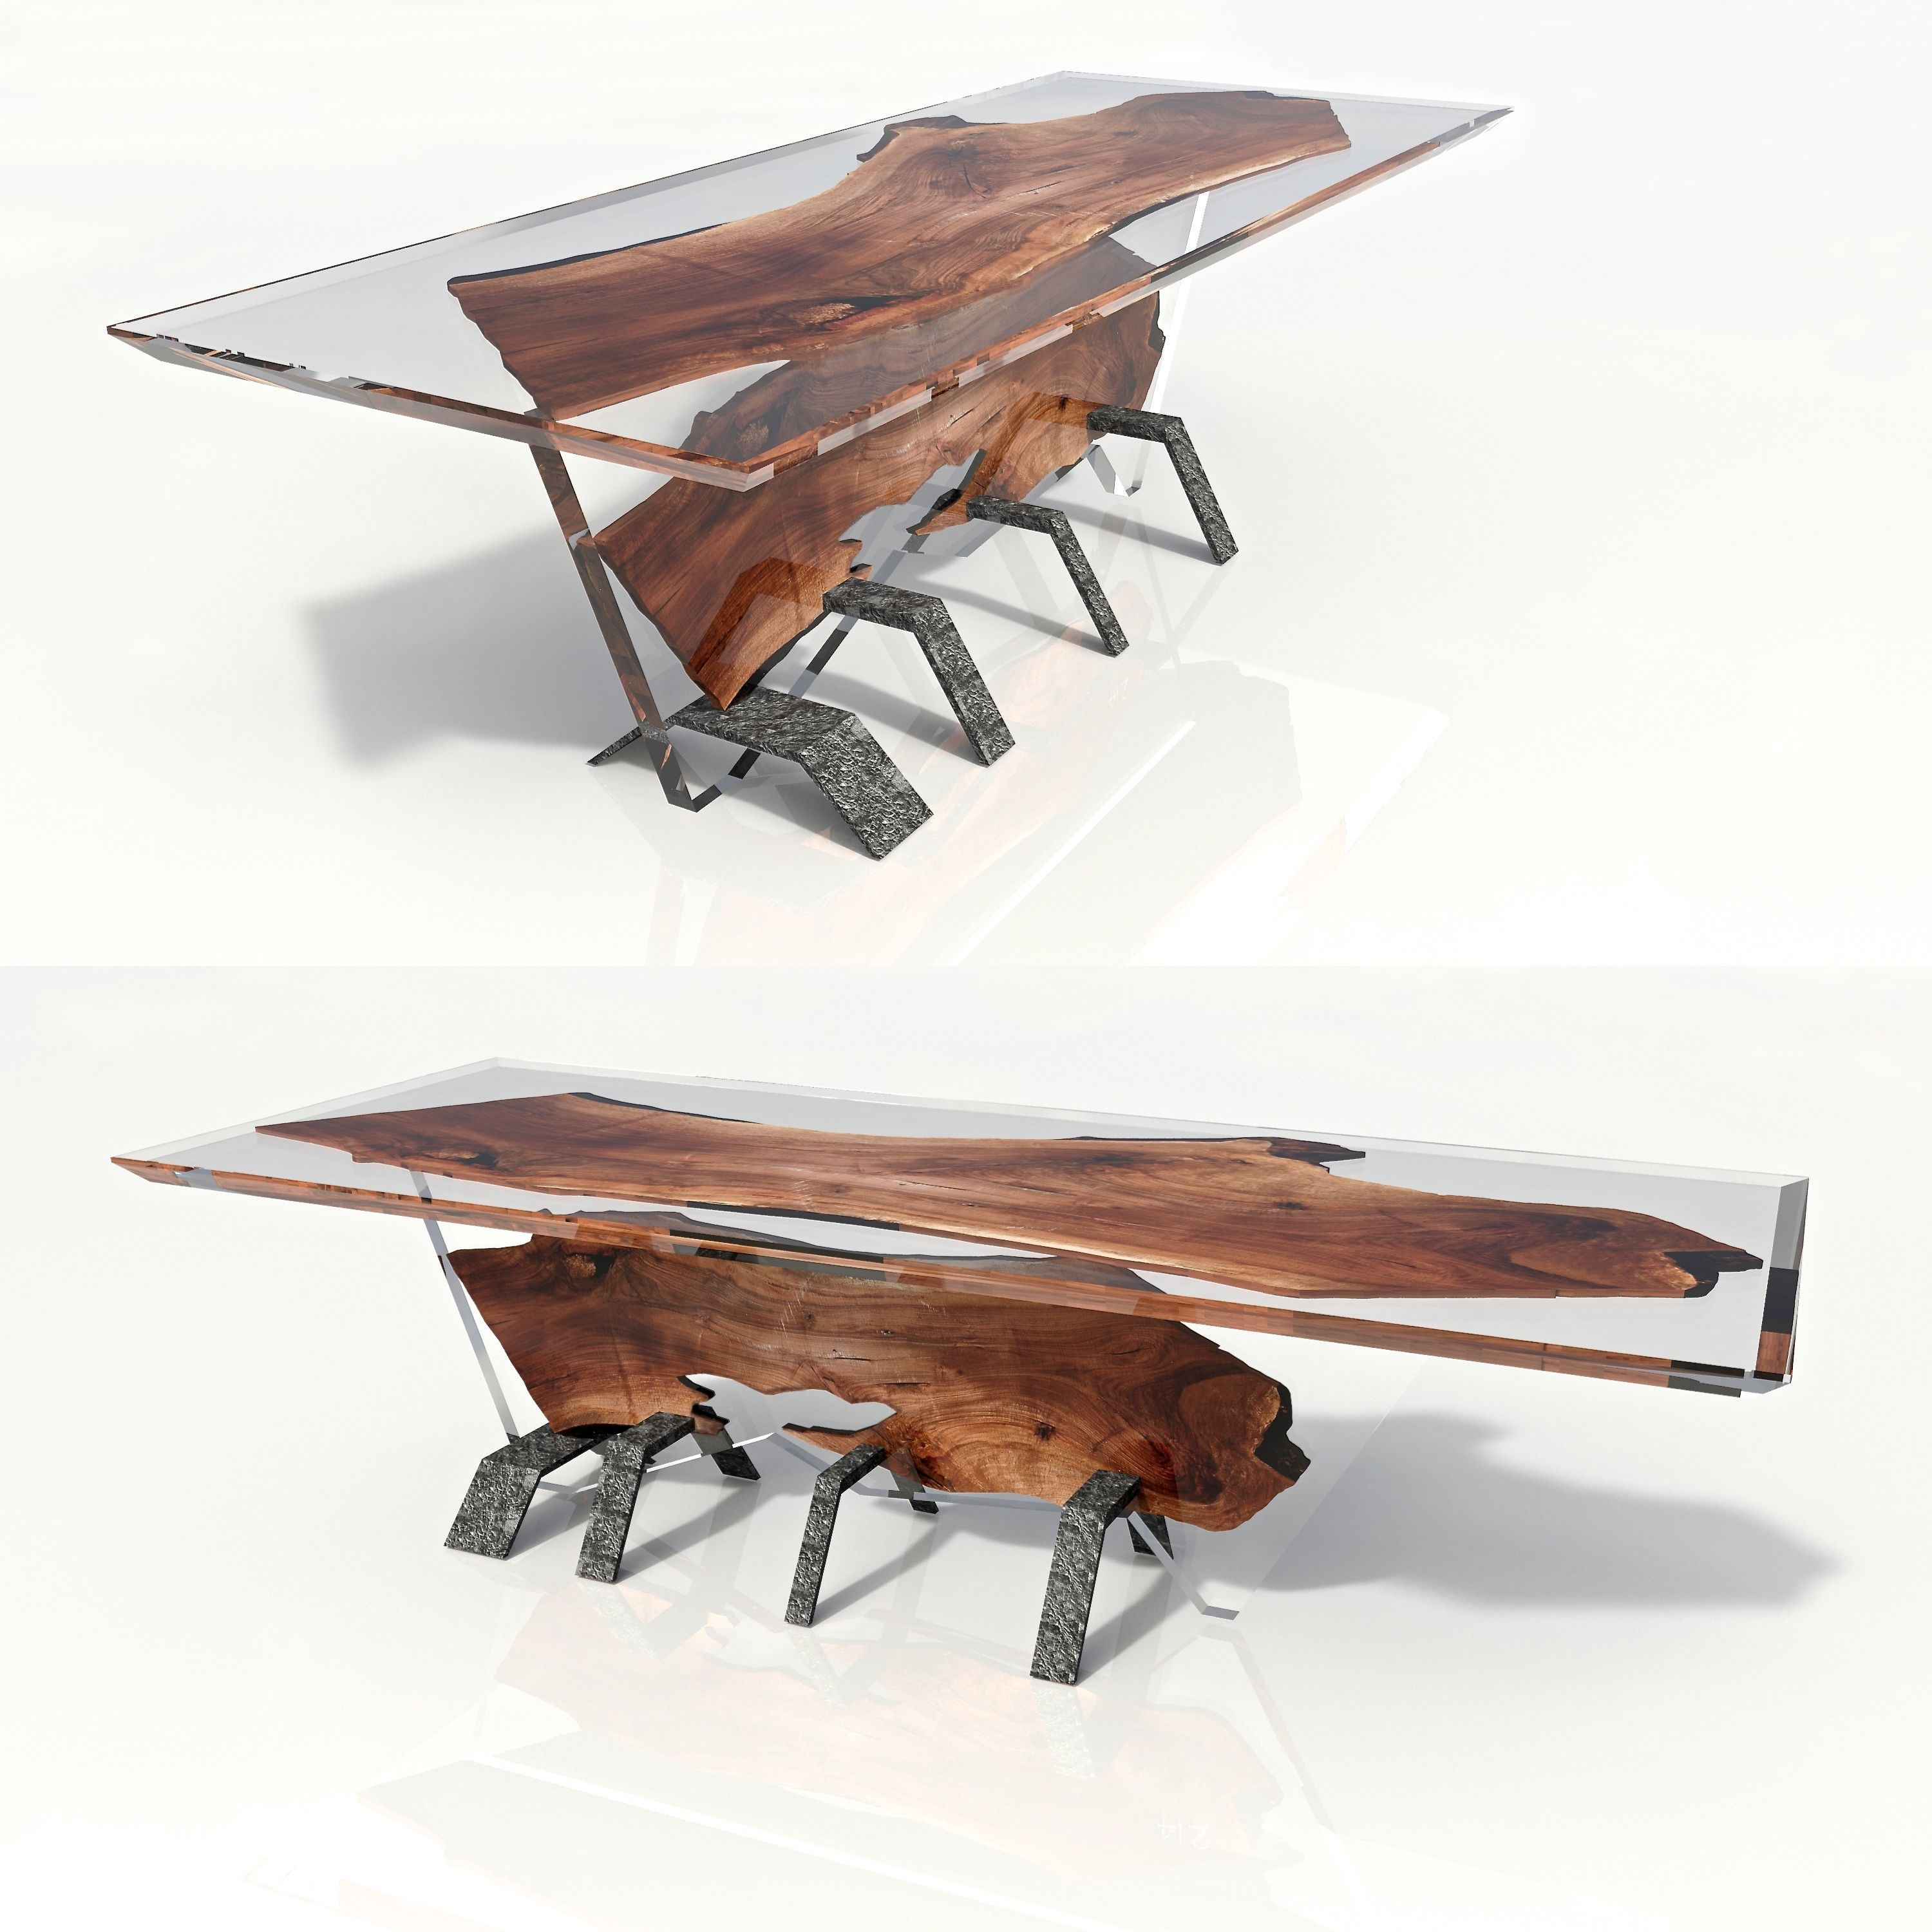 Reclaimed teak wood cracked resin side tables youtube - Resin Table Made By Riverwood Eu Consoles Bog Oak 800 6500 Years Old For